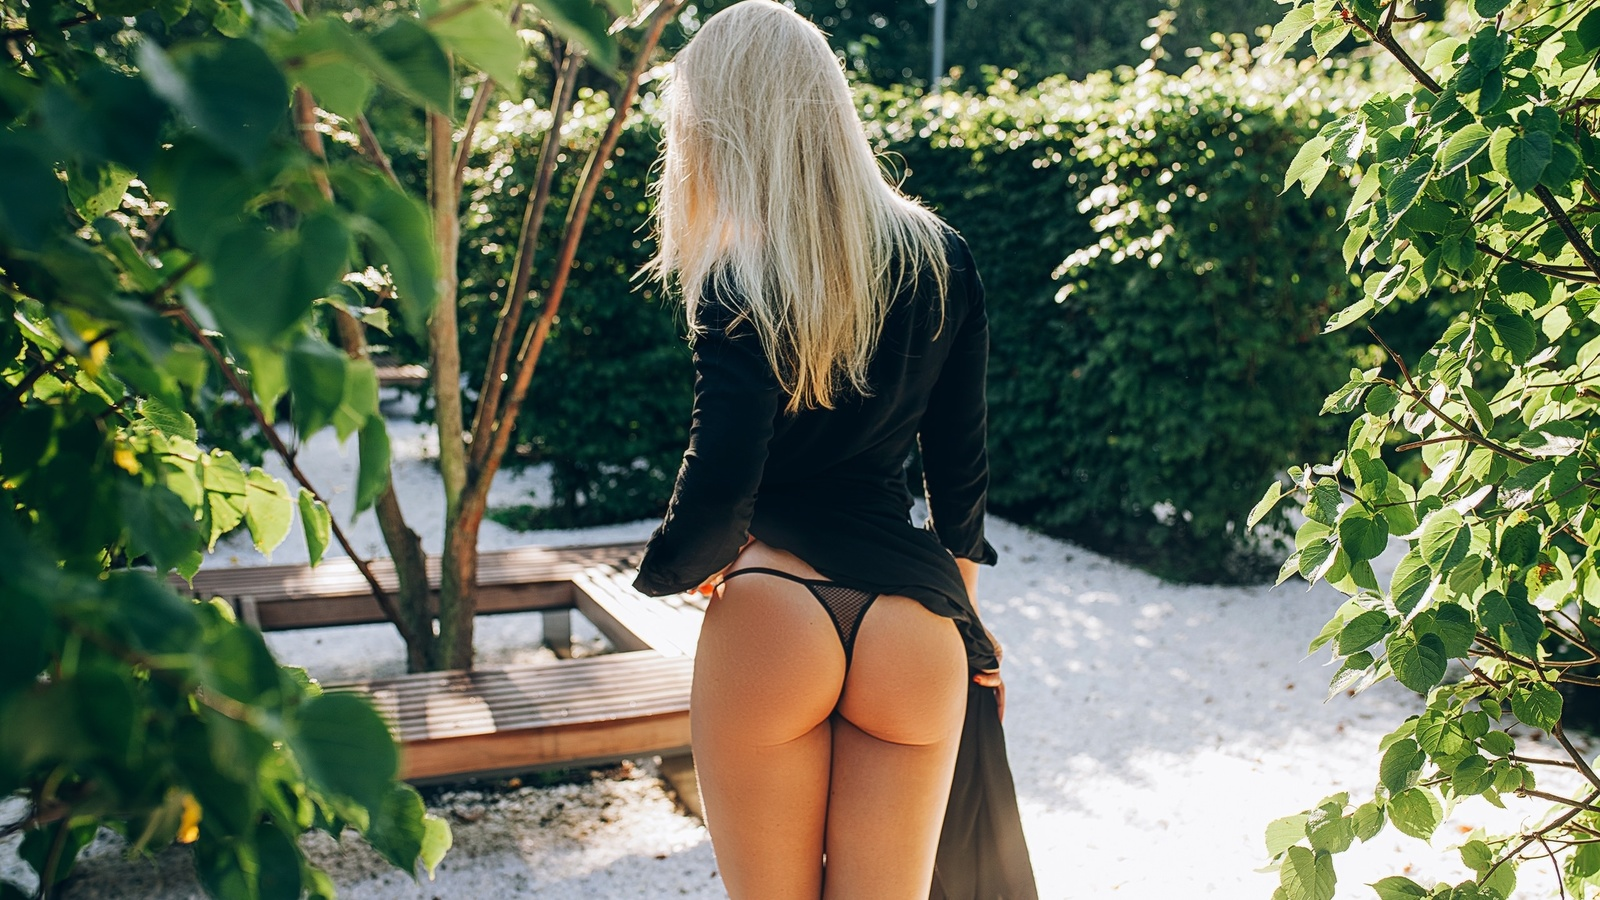 women, blonde, black lingerie, black dress, brunette, women outdoors, ass, back, red nails, leaves